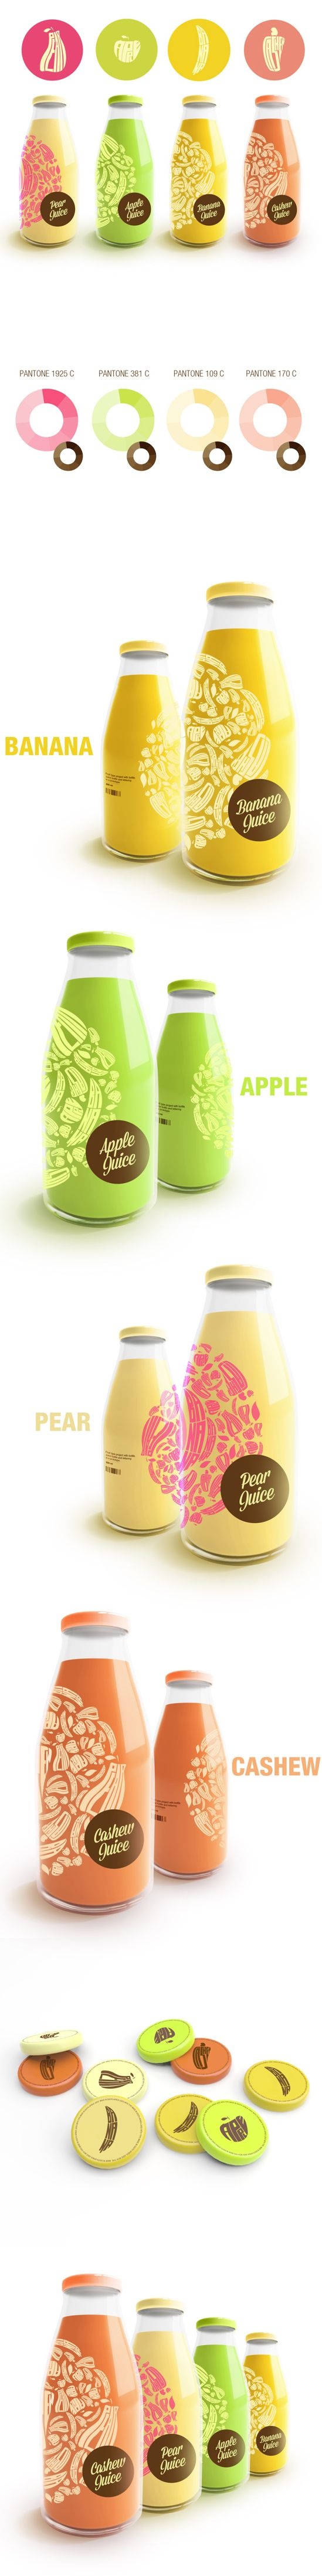 Juice packaging design